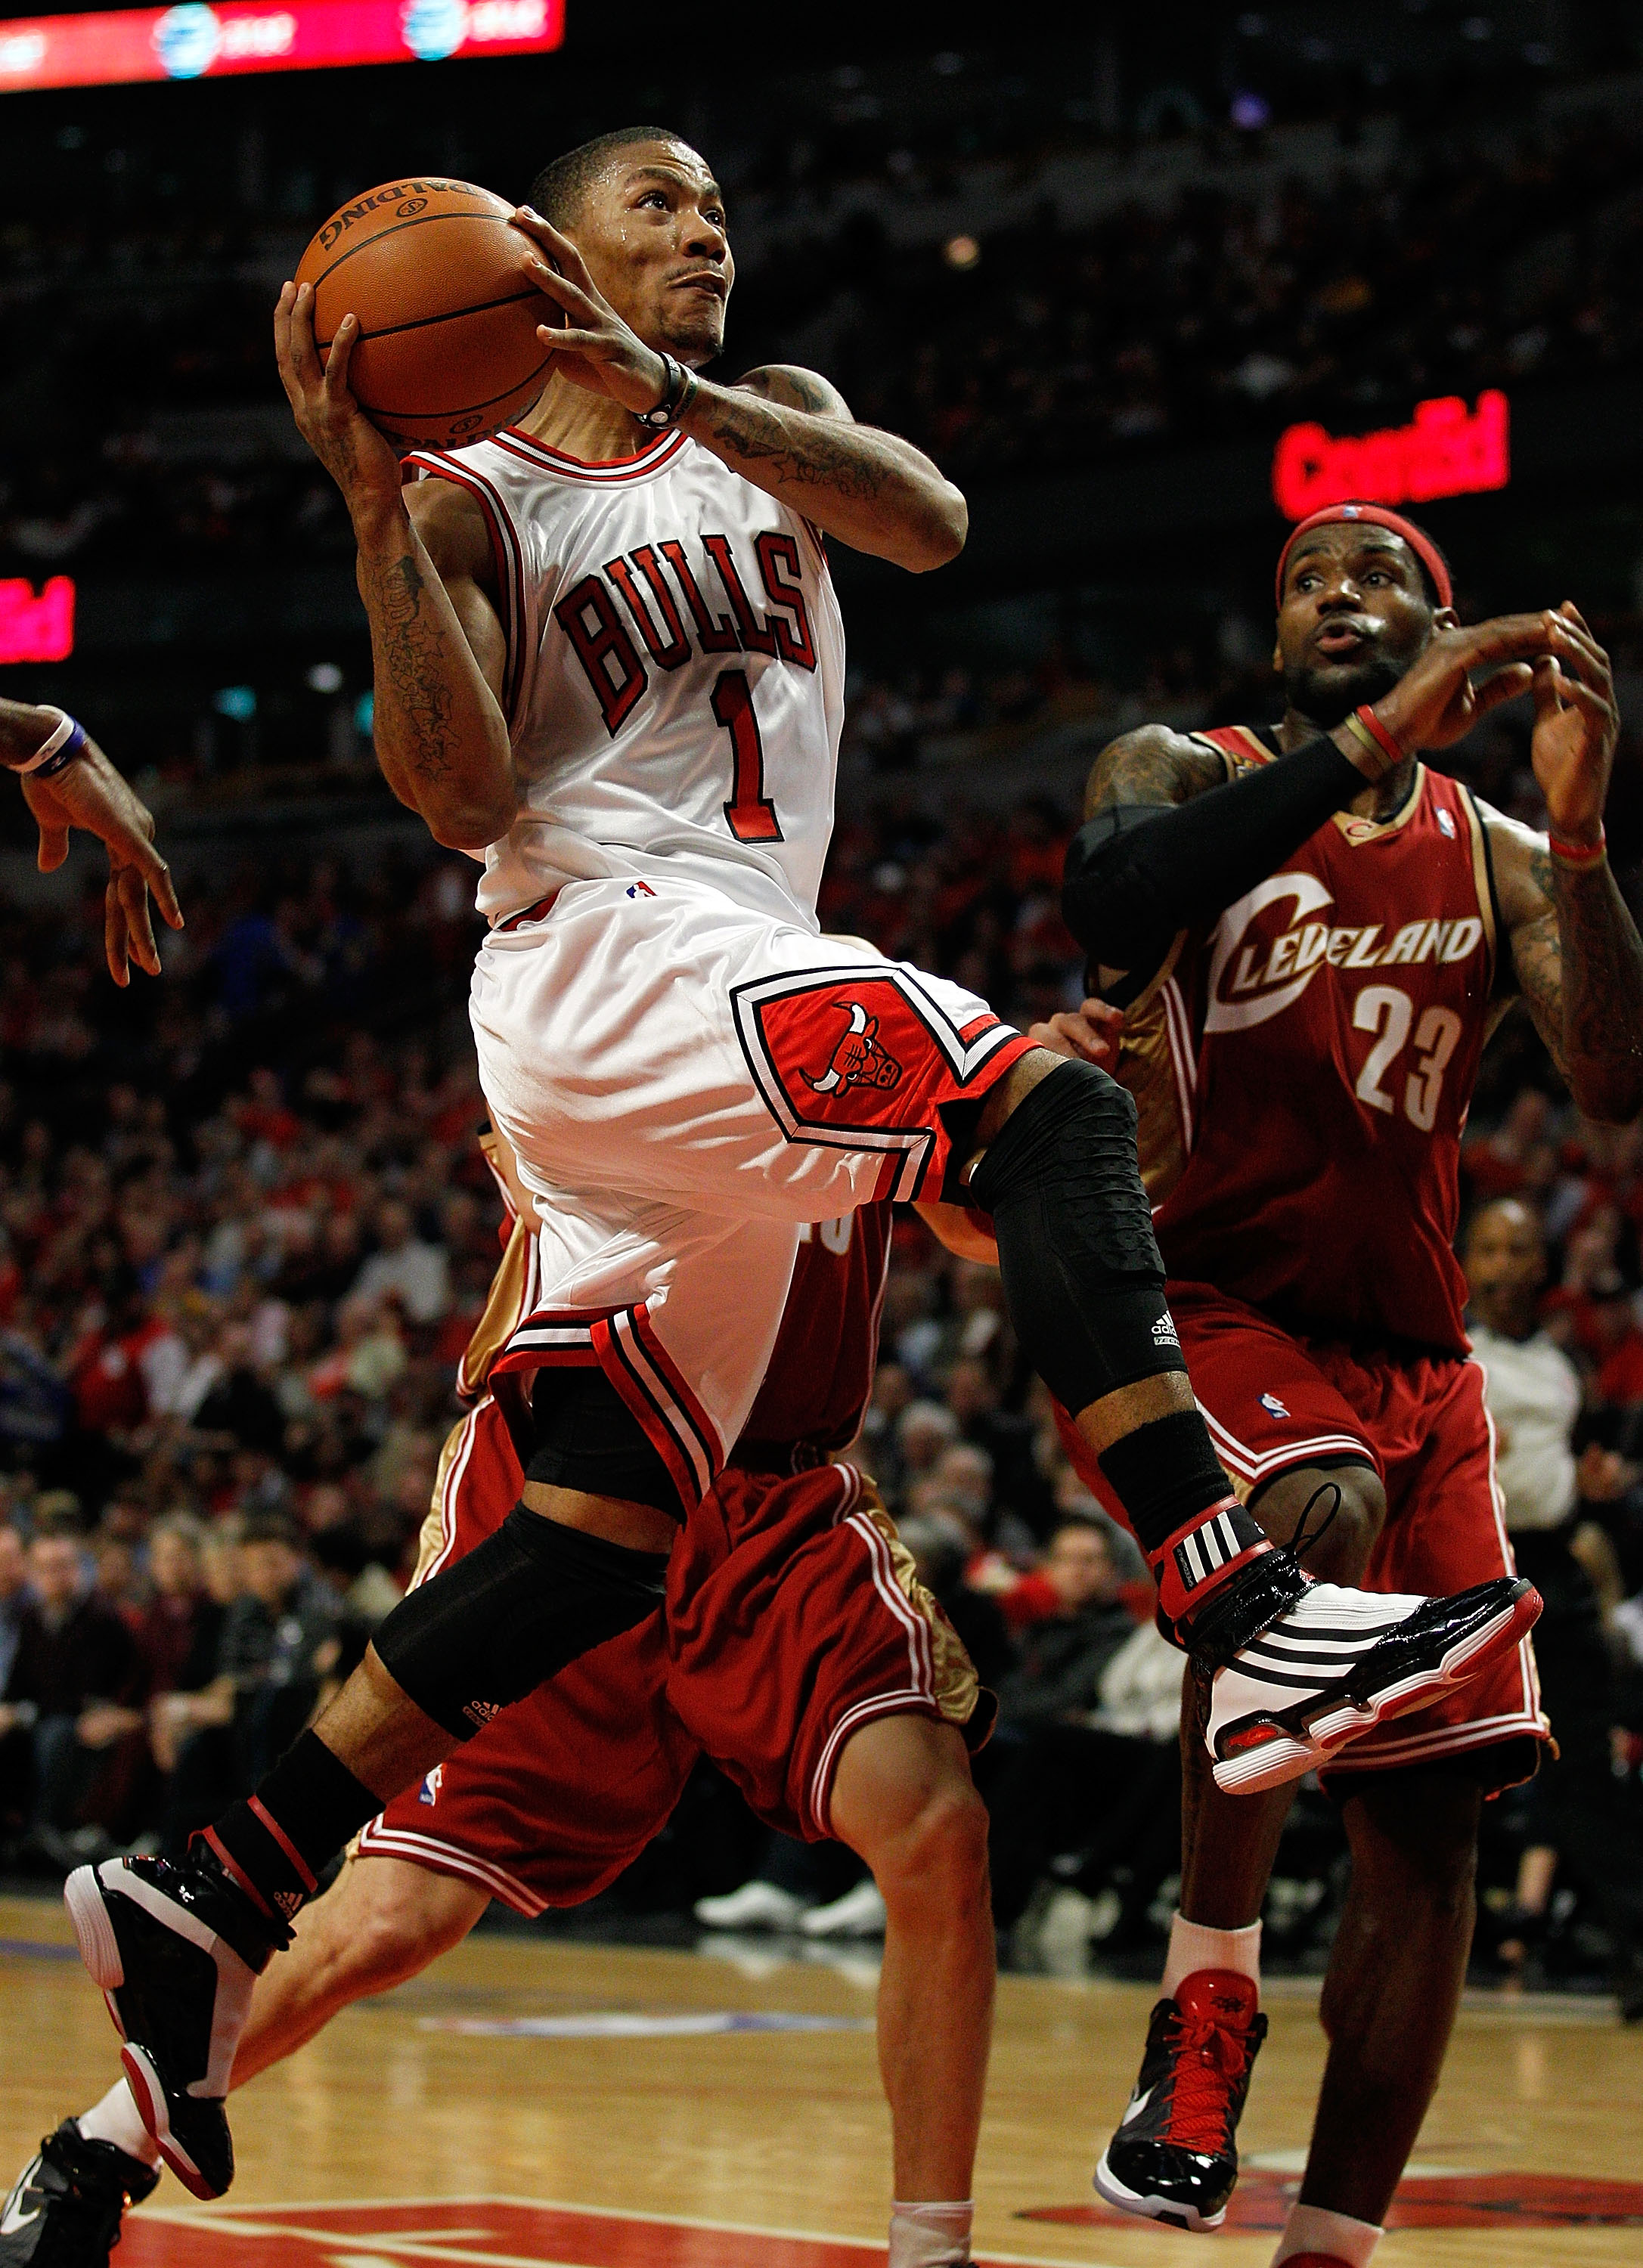 CHICAGO - APRIL 25: Derrick Rose #1 of the Chicago Bulls drives to the basket past LeBron James #23 of the Cleveland Cavaliers in Game Four of the Eastern Conference Quarterfinals during the 2010 NBA Playoffs at the United Center on April 25, 2010 in Chic